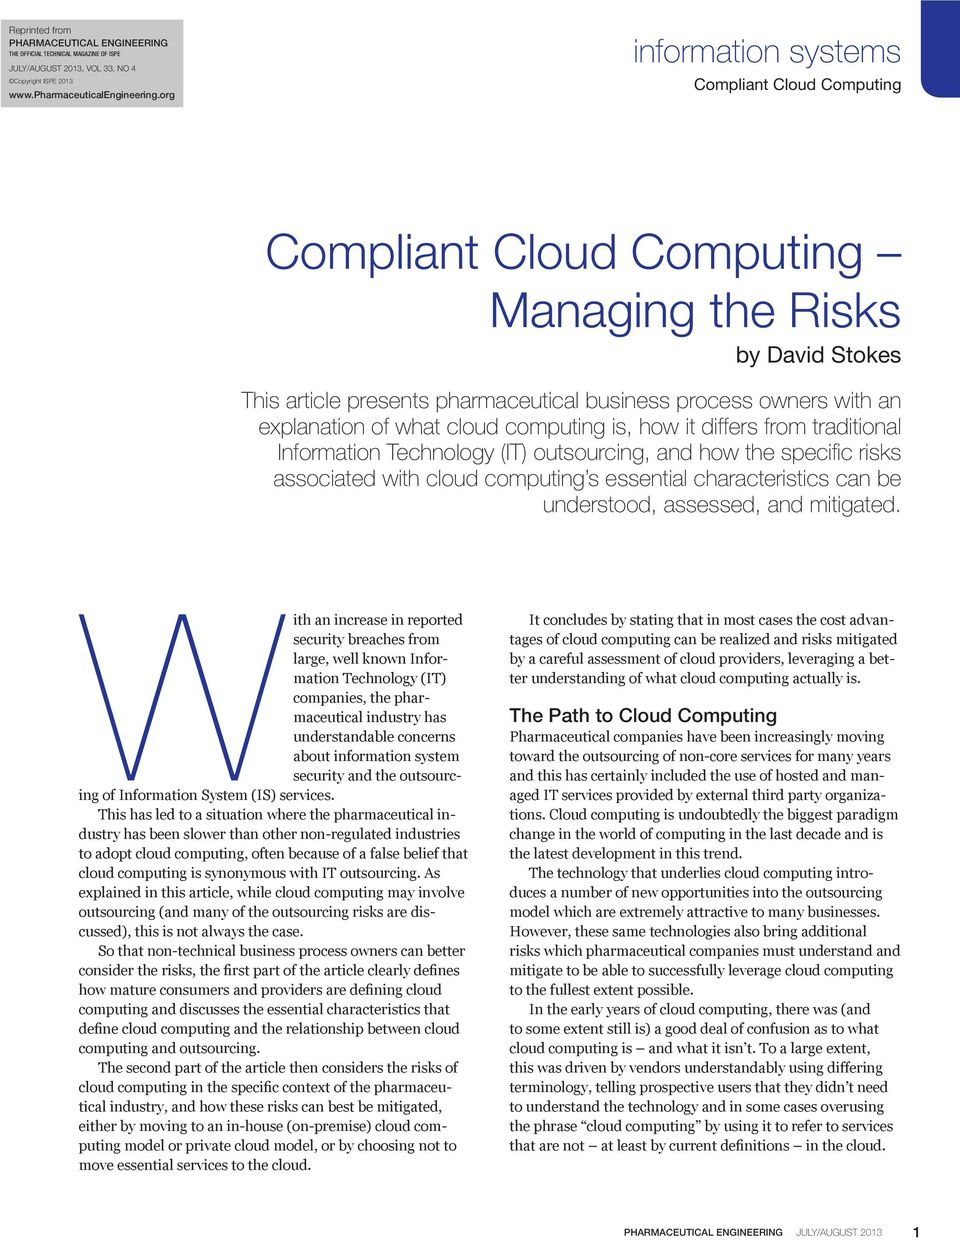 Information Technology (IT) outsourcing, and how the specific risks associated with cloud computing s essential characteristics can be understood, assessed, and mitigated.